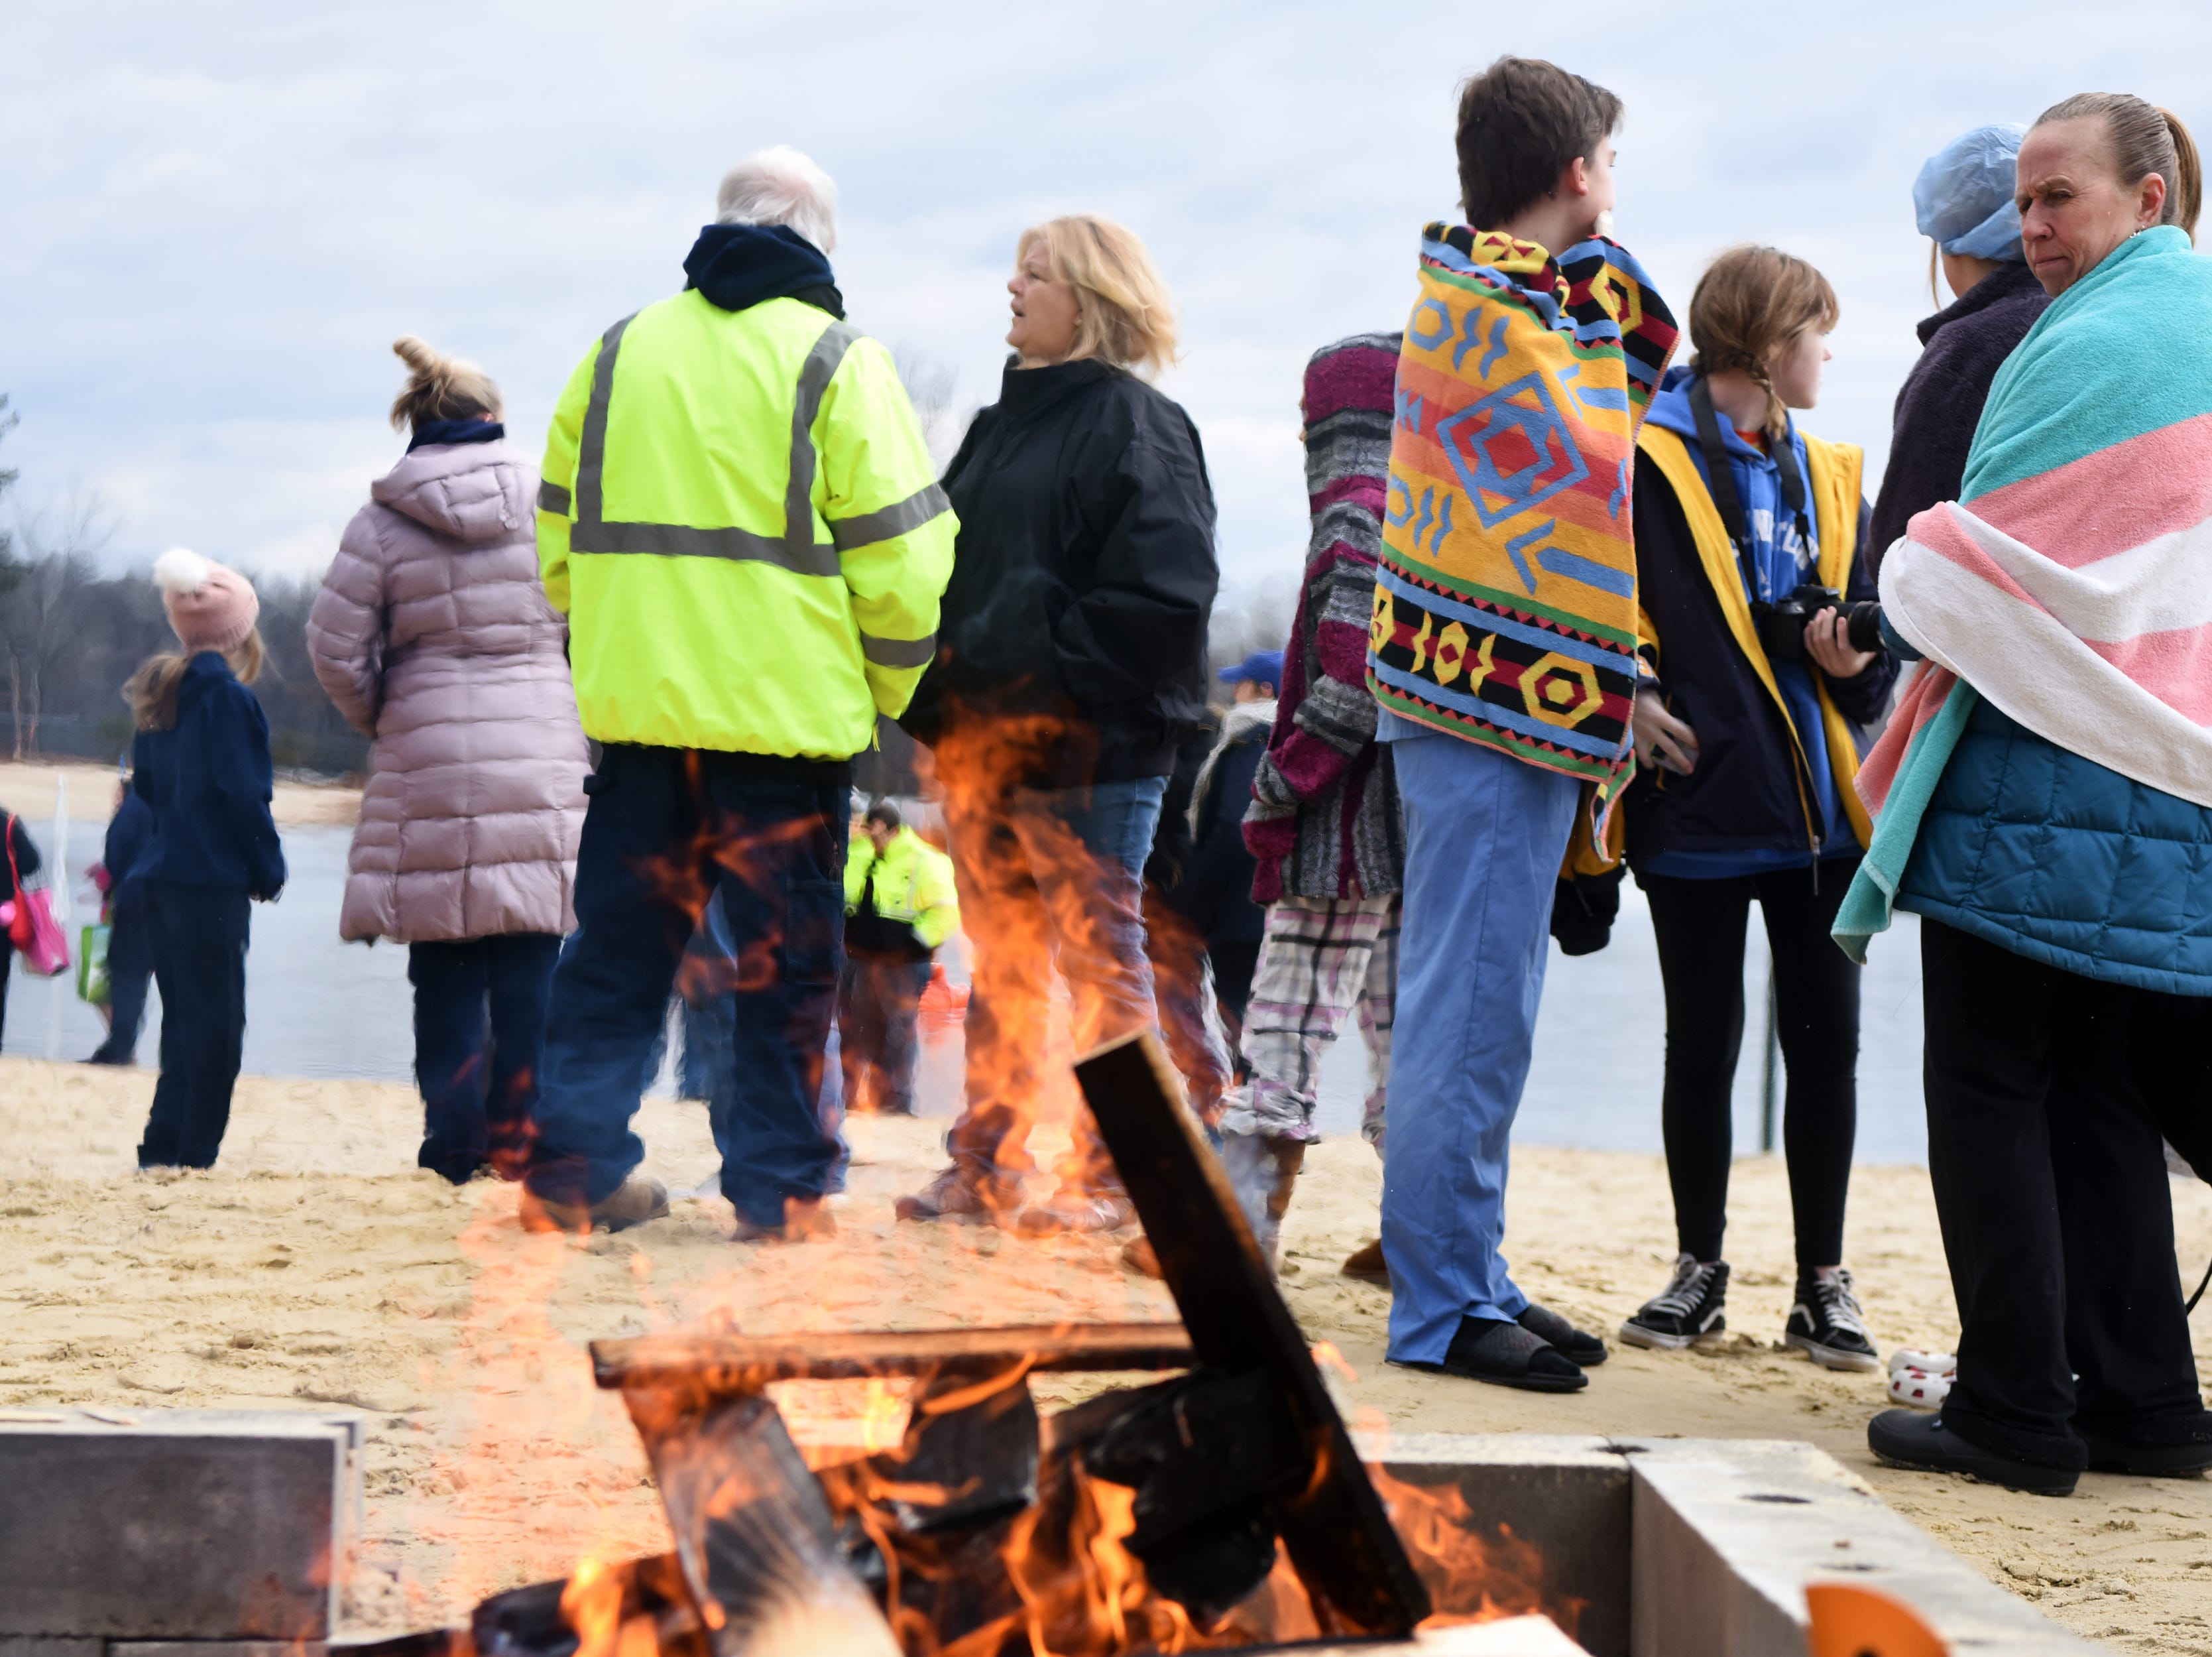 Participants in the 4th annual Pequannock Polar Plunge stay warm by the fire prior to jumping into the lake in Pequannock Valley Park on Sunday, January 6, 2019.